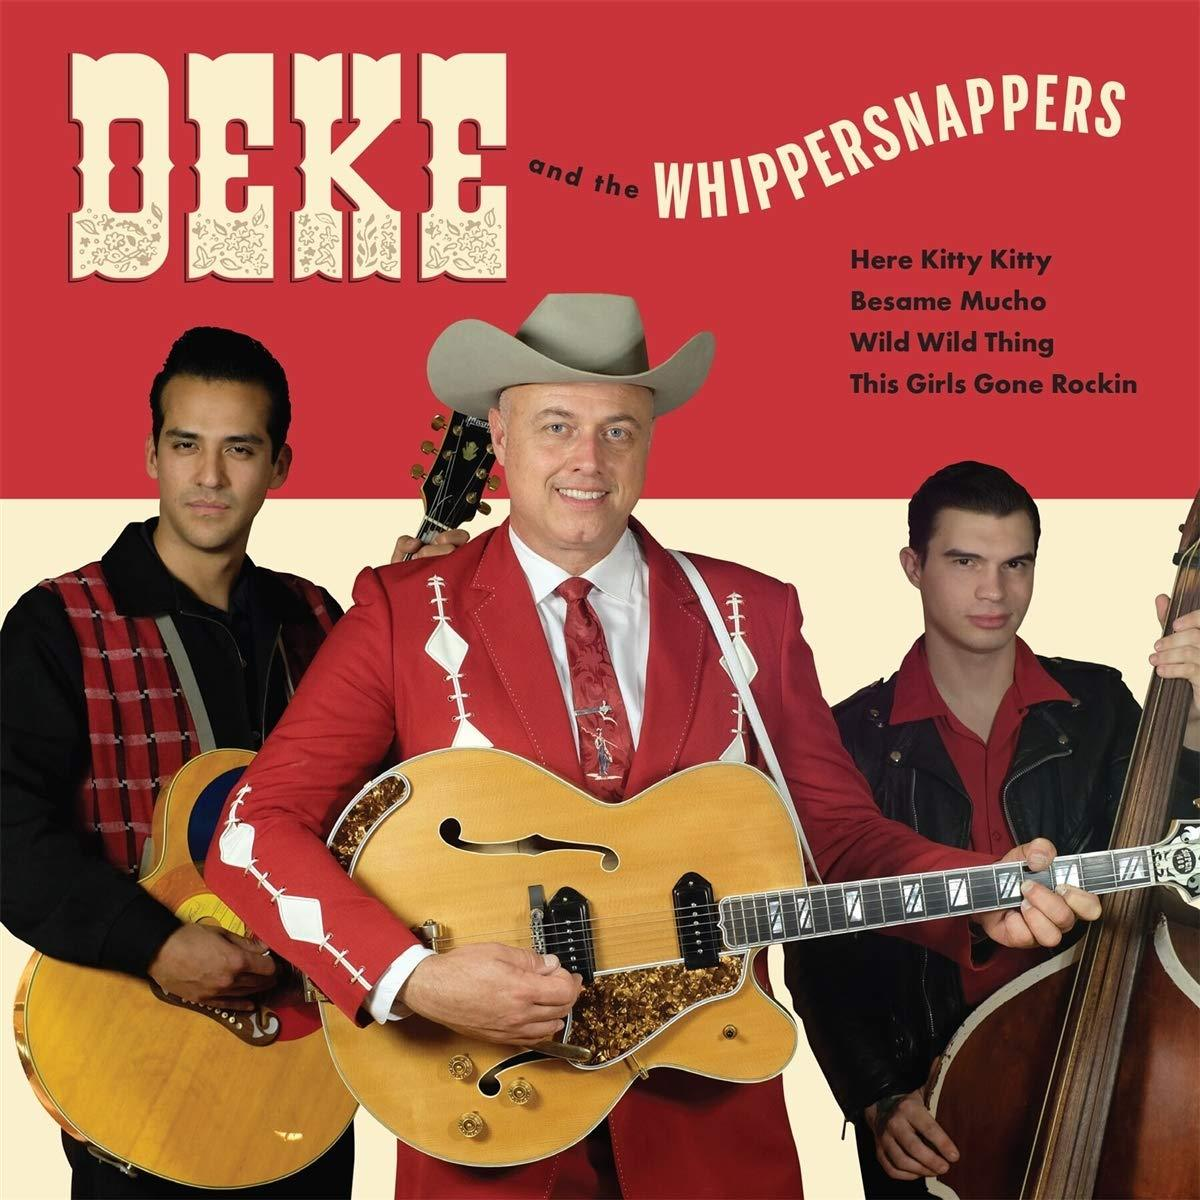 Deke Dickerson & The Whippersnappers - Deke Dickerson & The Whippersnappers [7''] (hand-humbered/limited to 1000) - Urban Vinyl | Records, Headphones, and more.